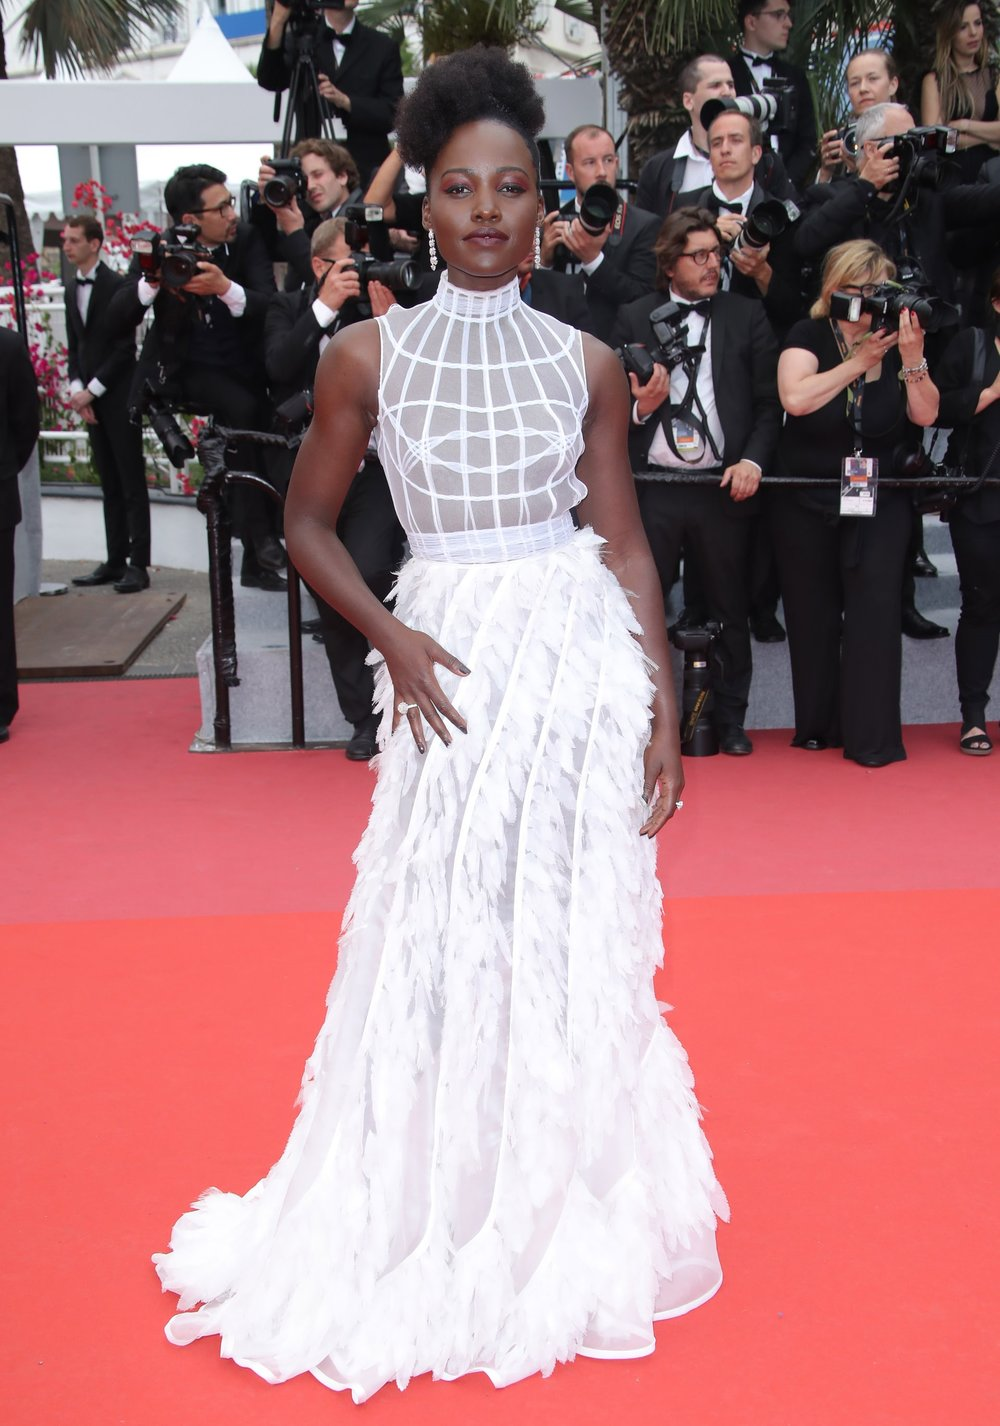 Lupita Nyong'o at the Cannes film festival this month.